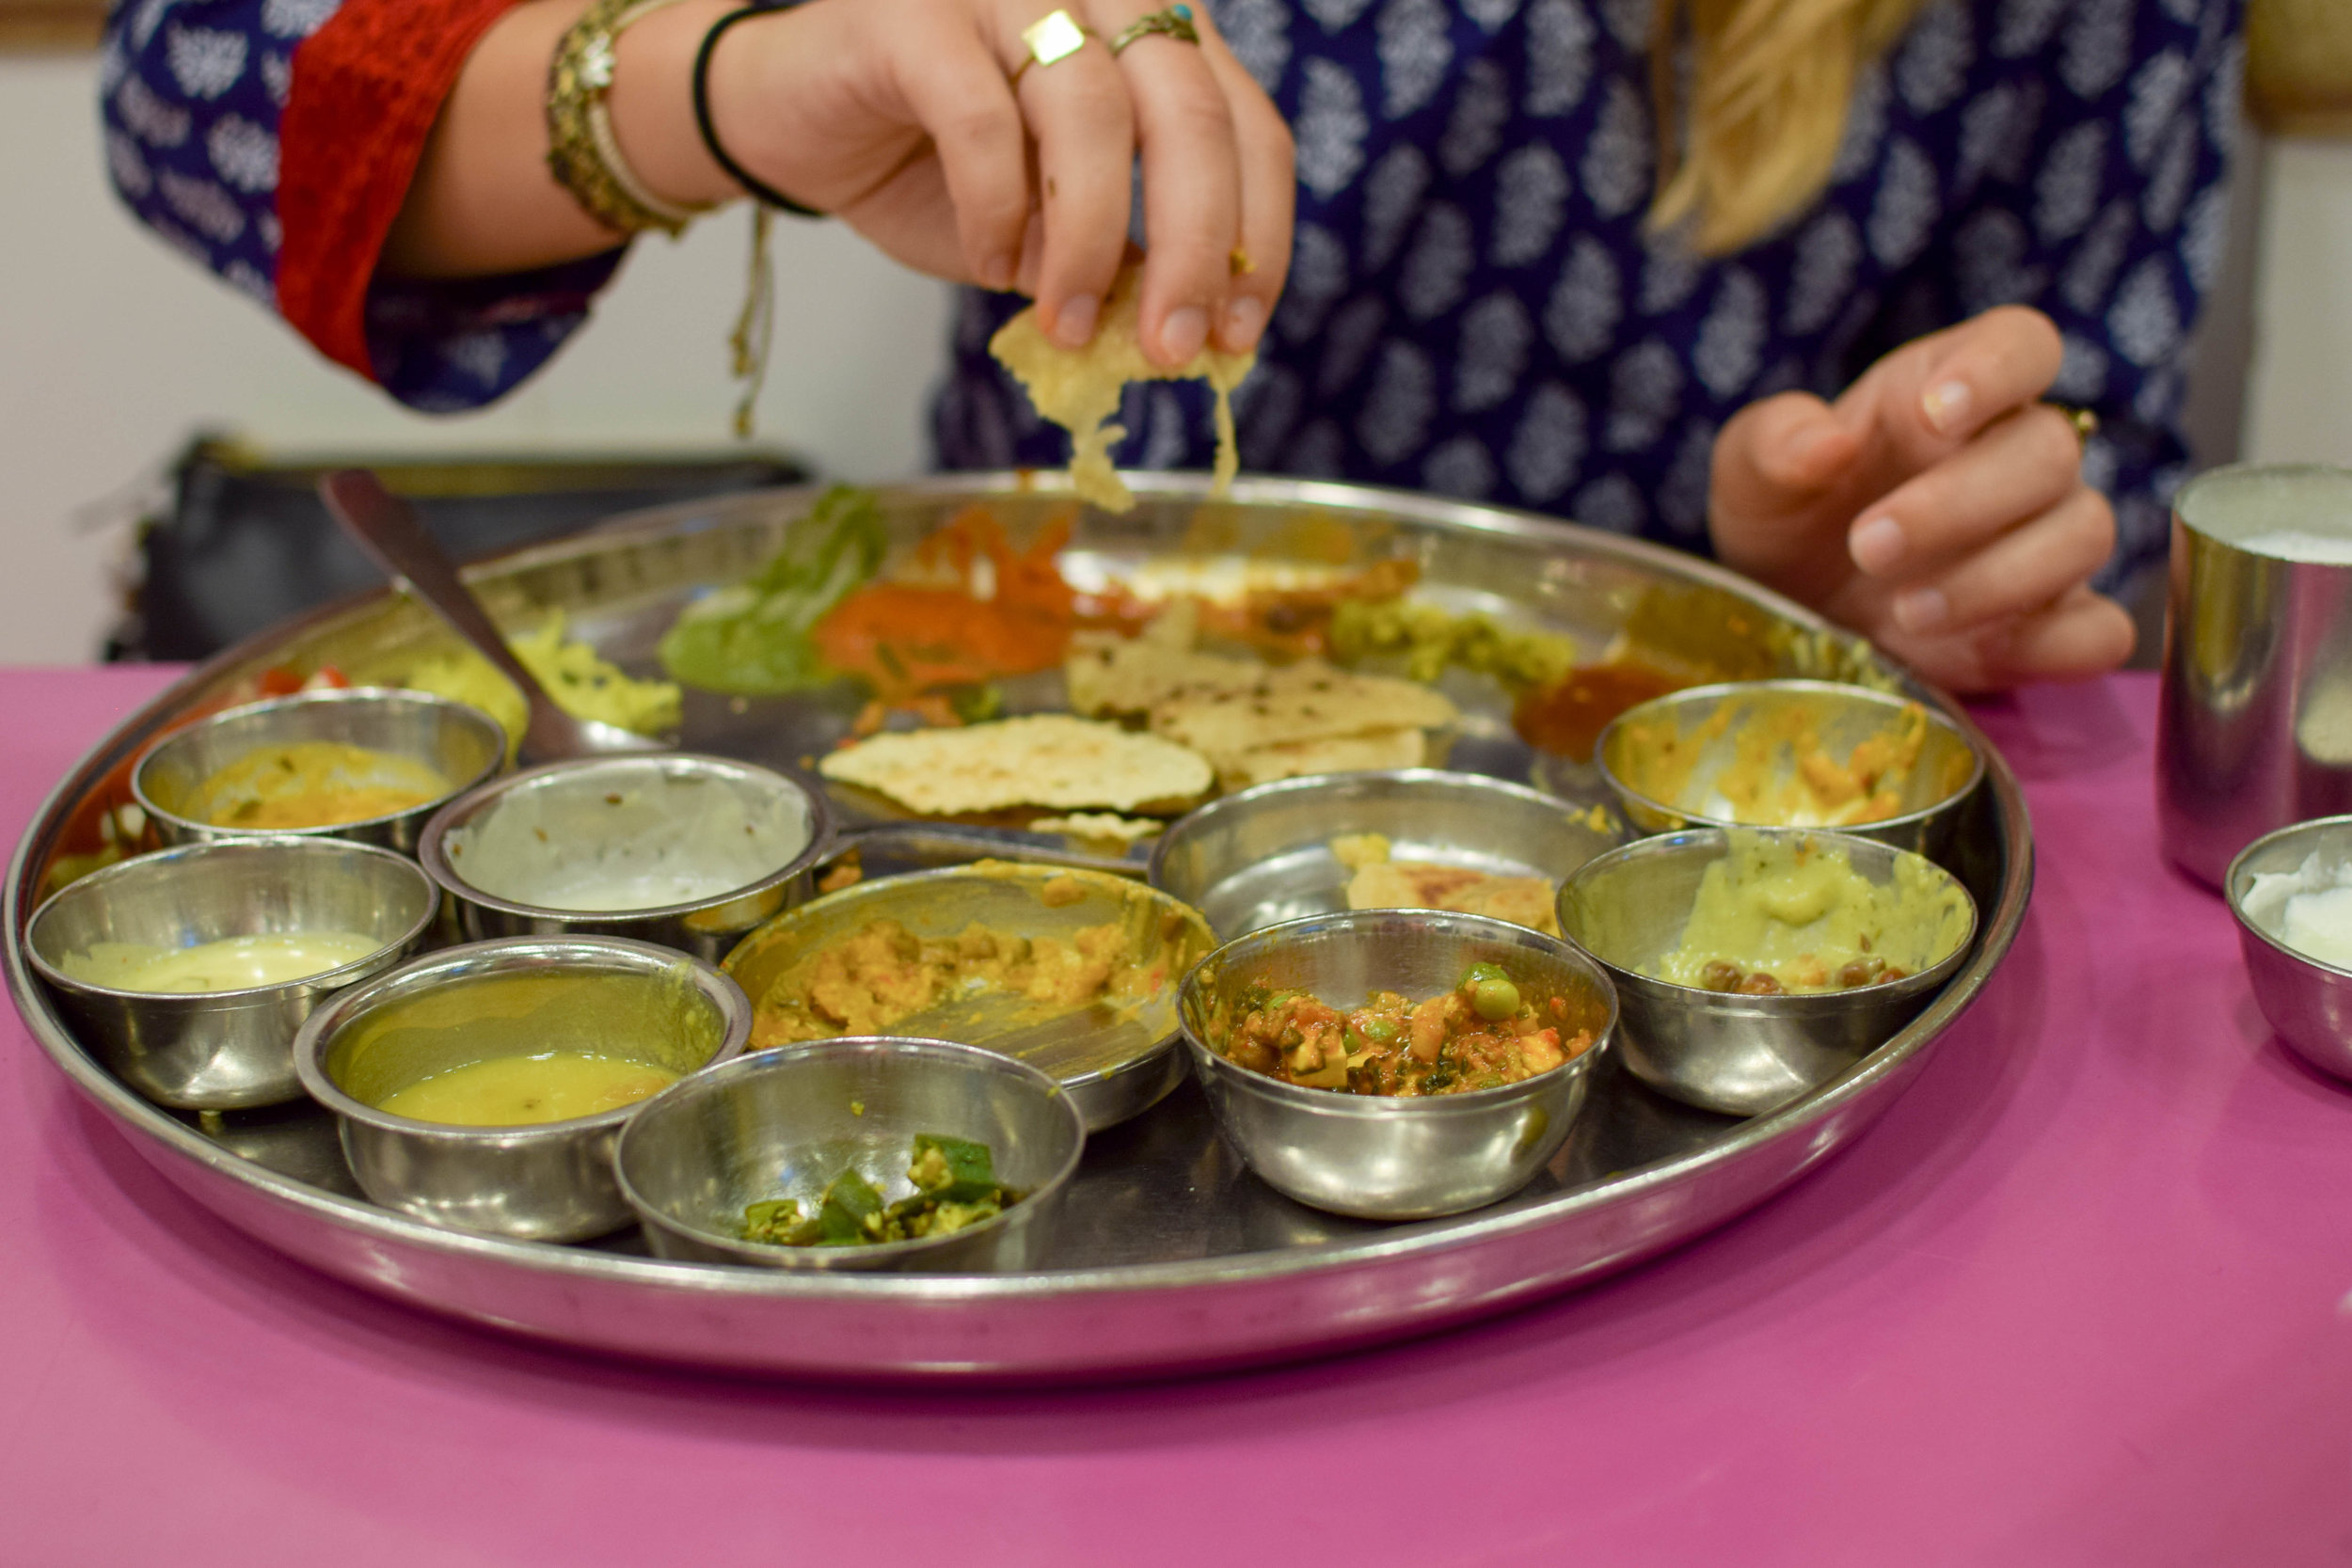 Nothing like a good thali.